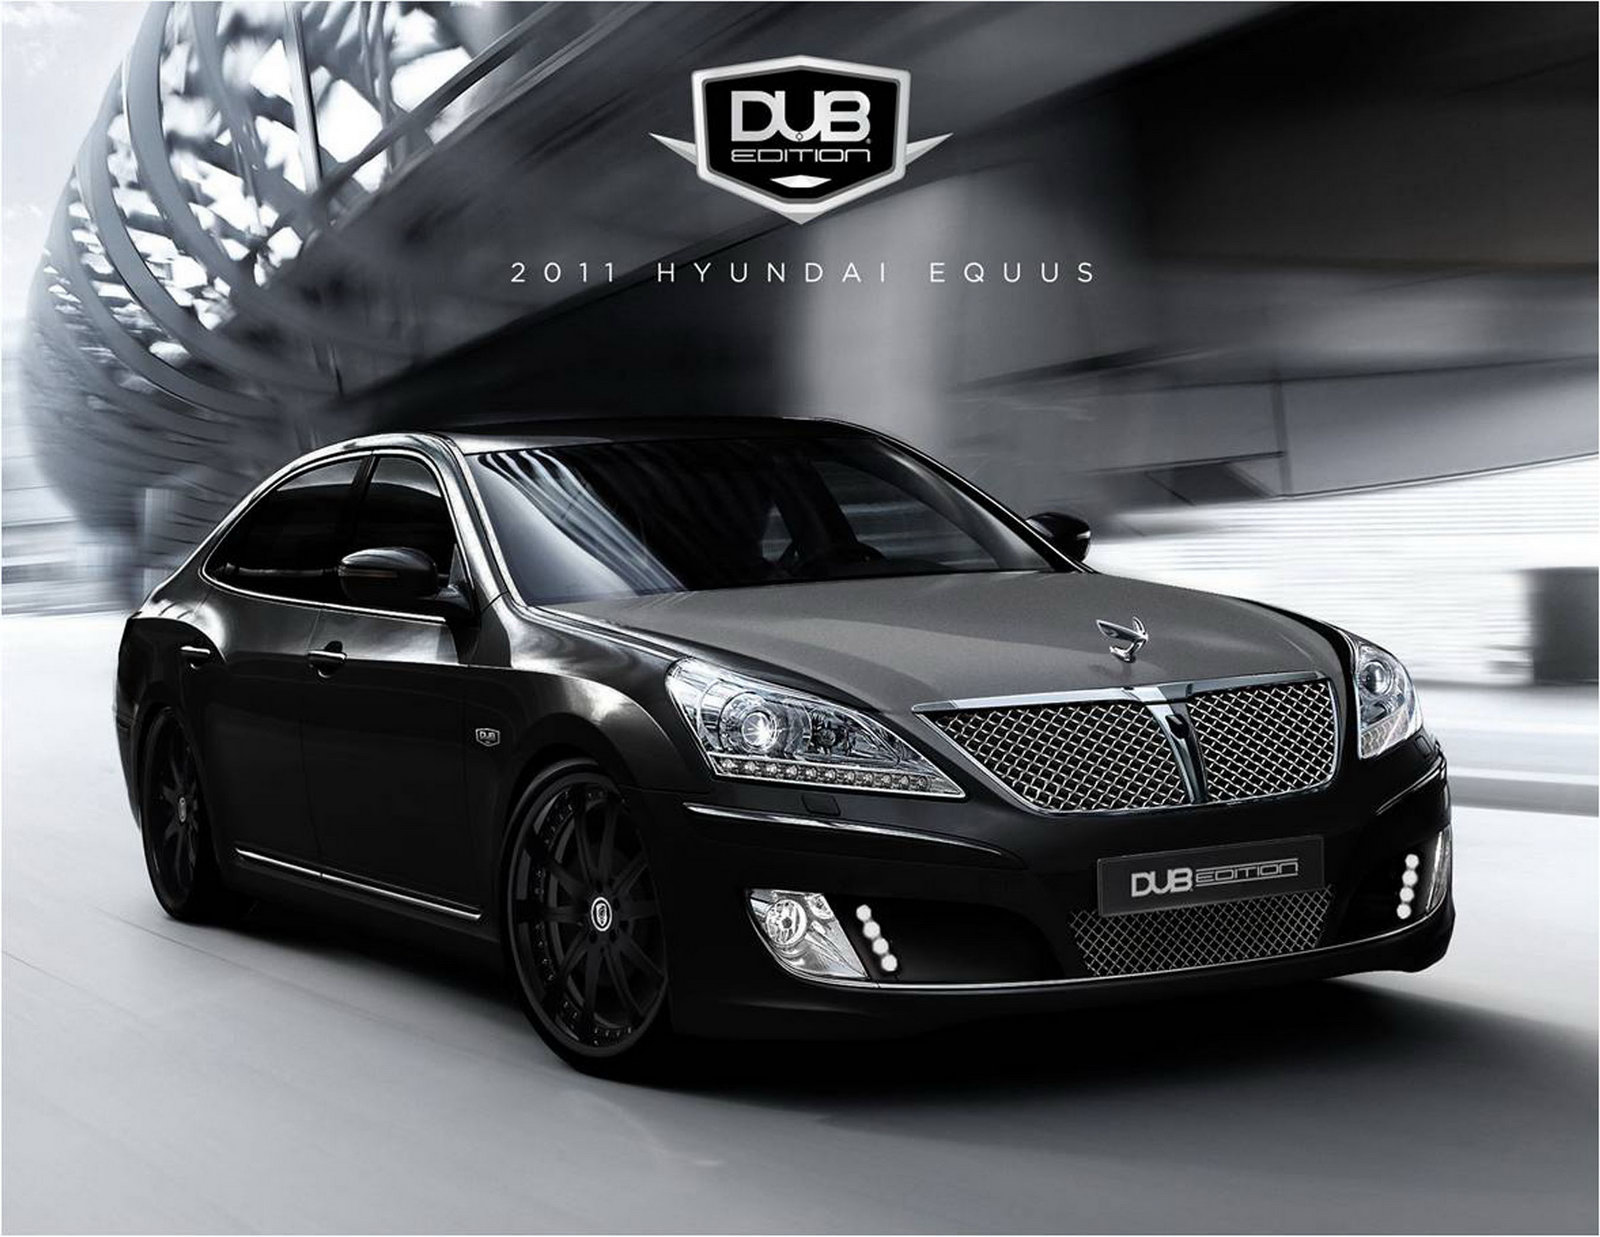 hyundai equus car review 2011 and pictures luxury cars. Black Bedroom Furniture Sets. Home Design Ideas